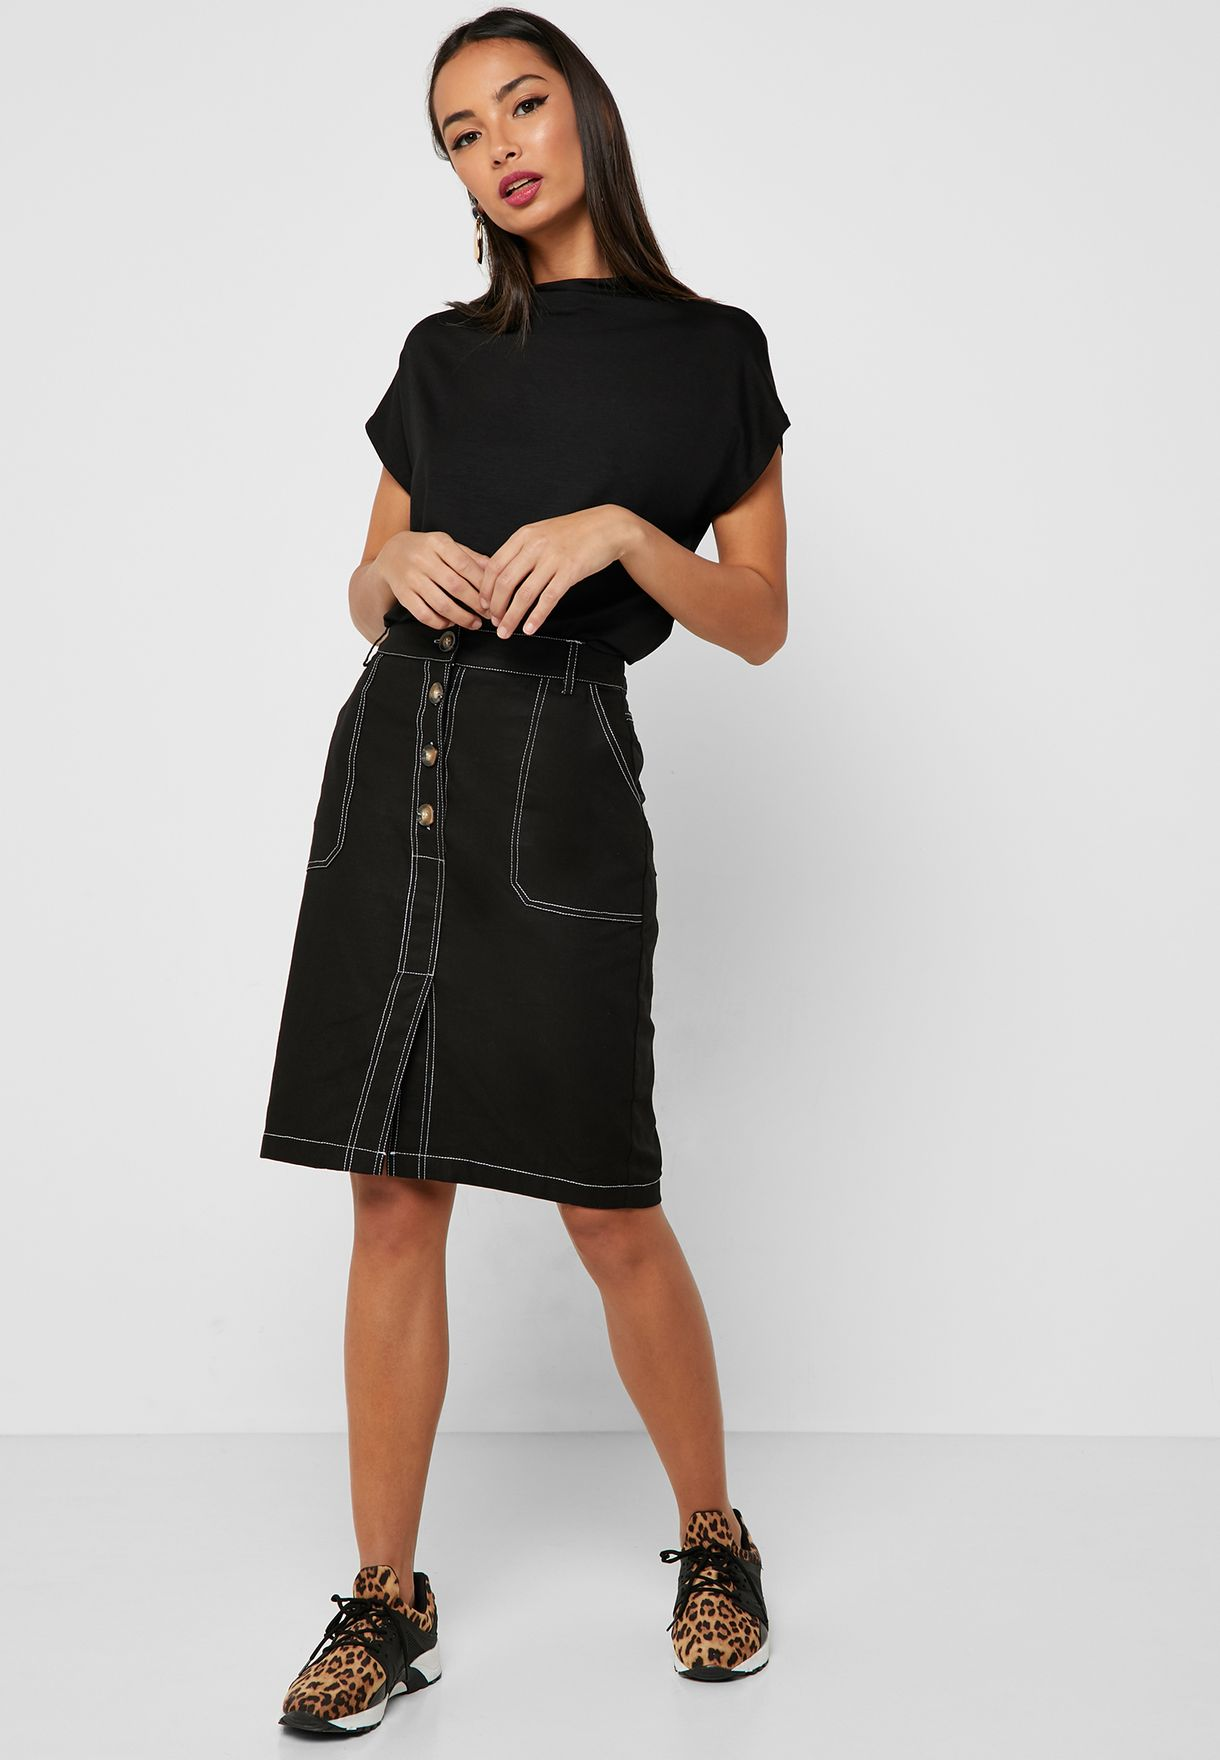 06f50e44722 Shop Ginger black Contrast Stitched Button Front Midi Skirt YG181234 ...